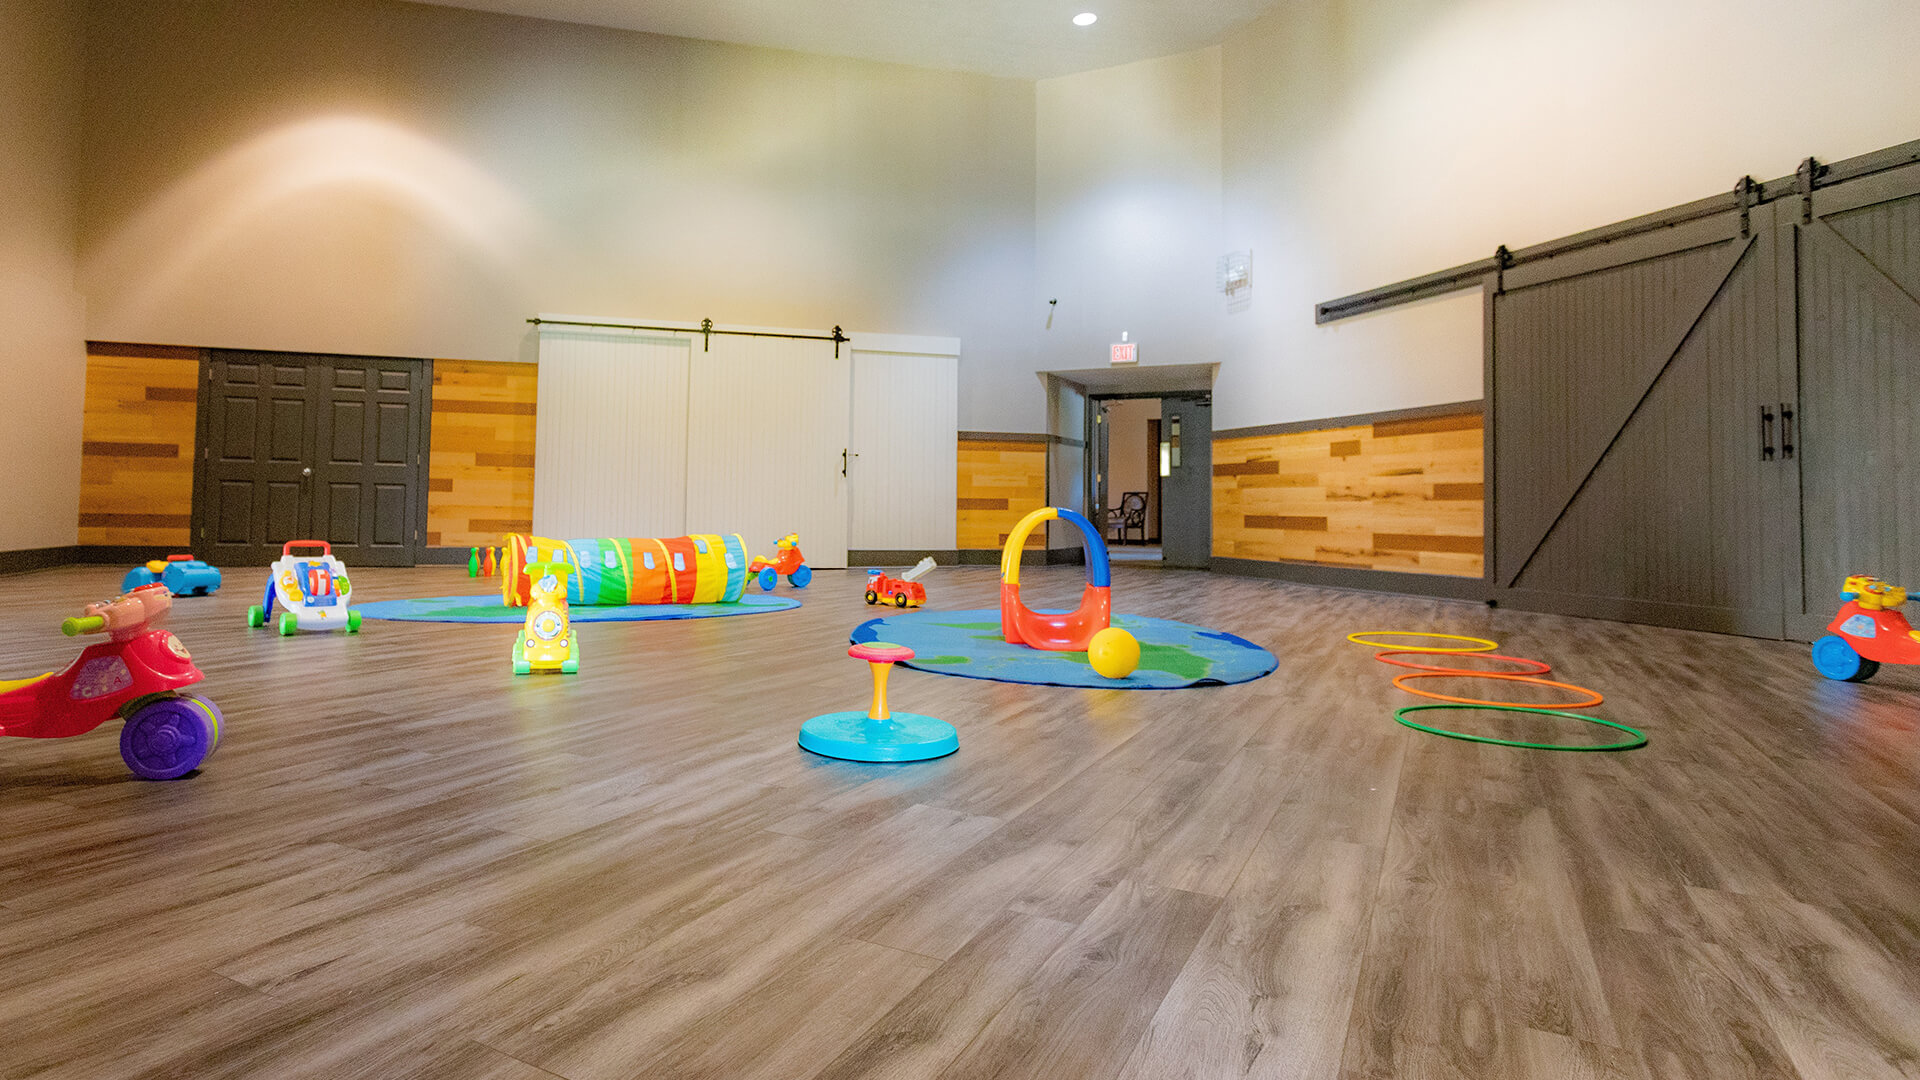 Play room at Mt. Elizabeth Academy, Daycare, preschool, Kennesaw Christian school, private school